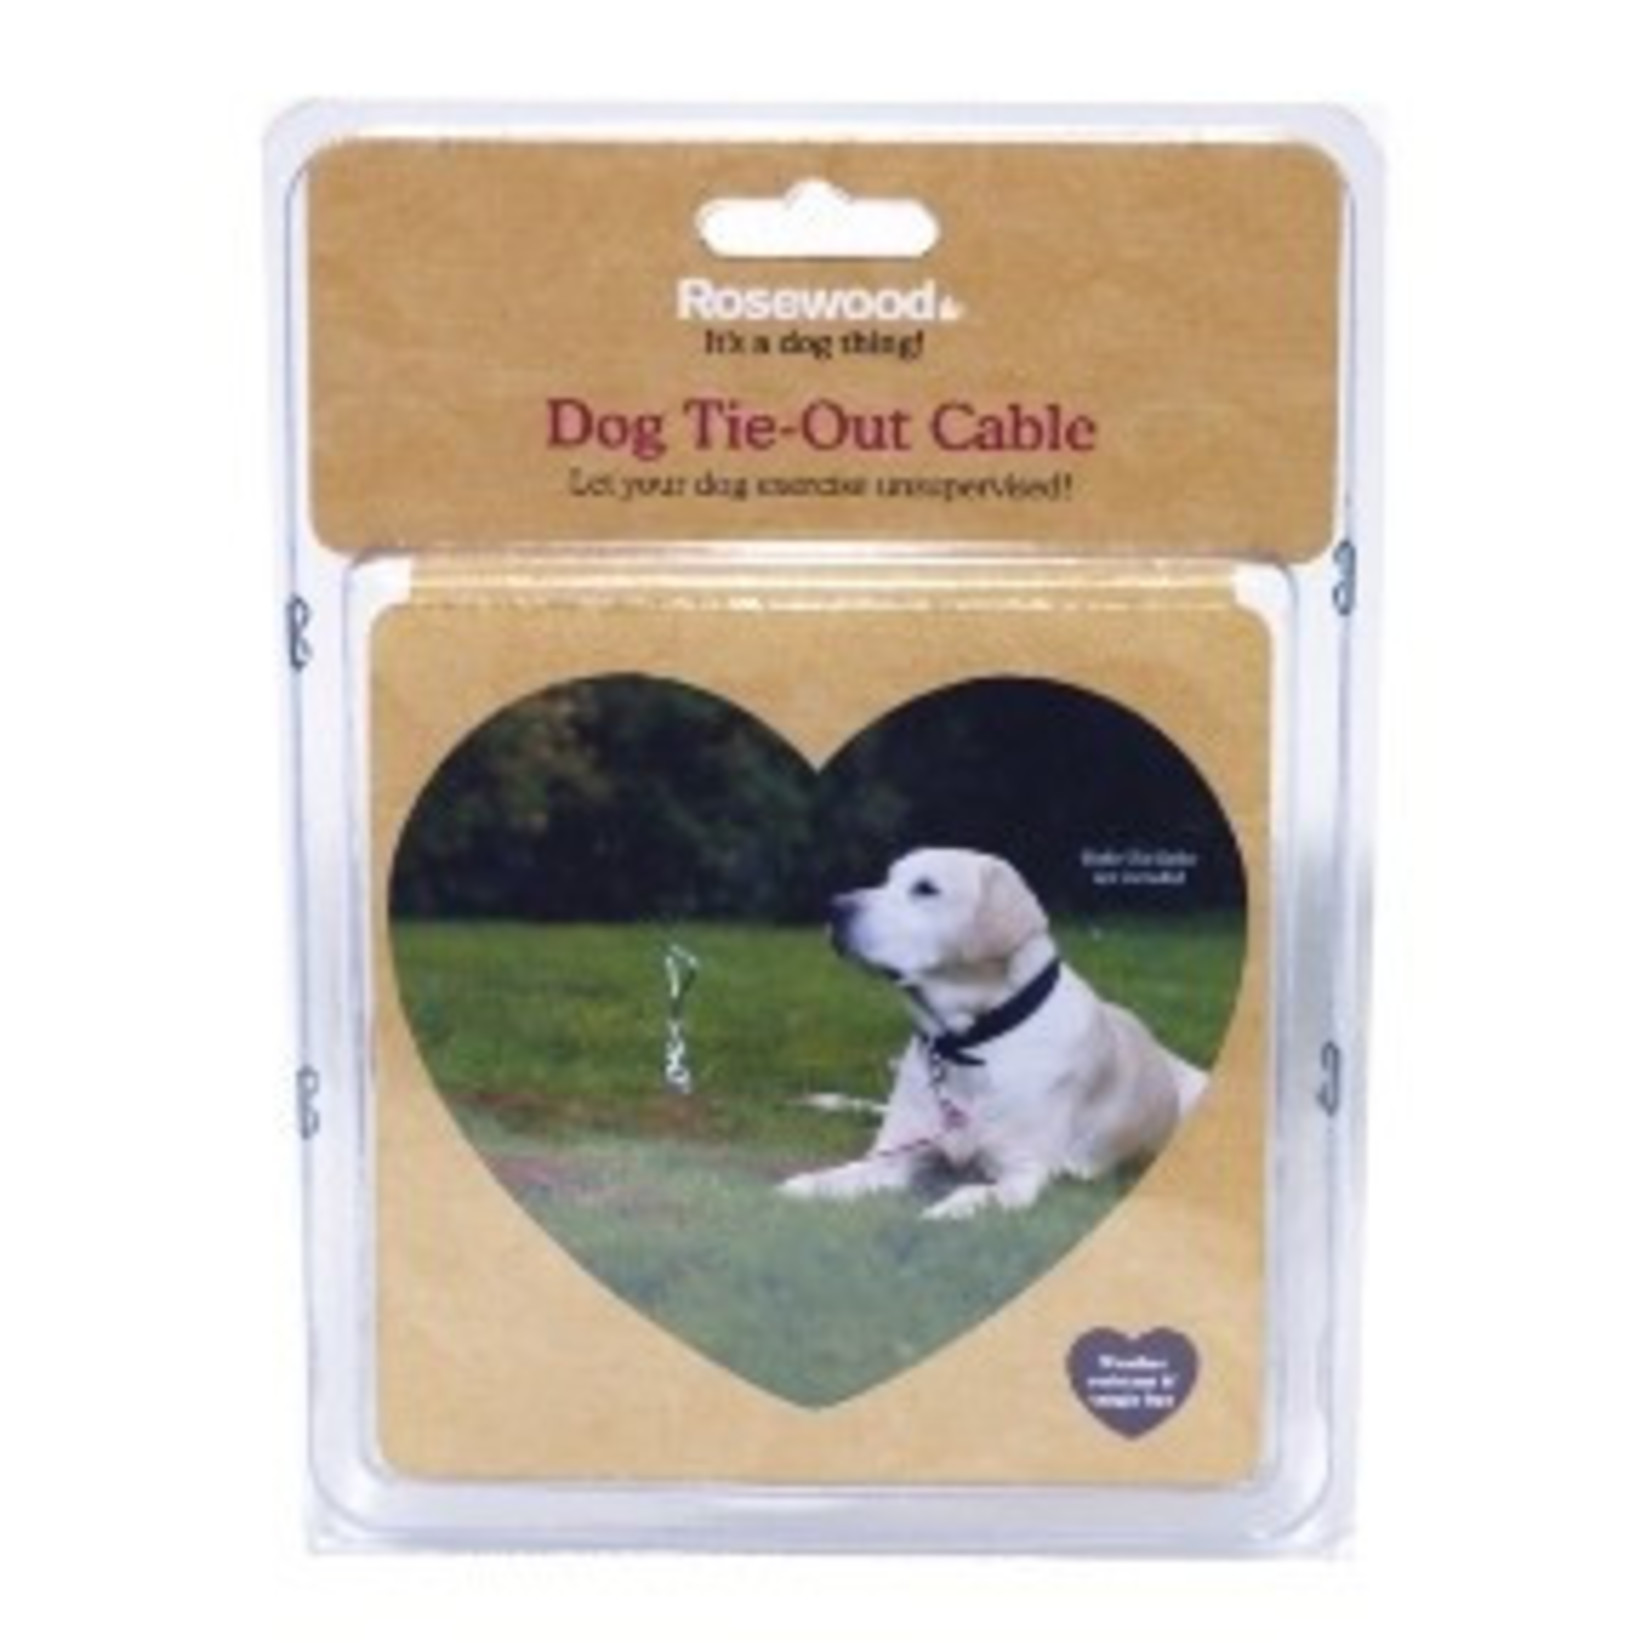 Rosewood Dog Tie Out Cable